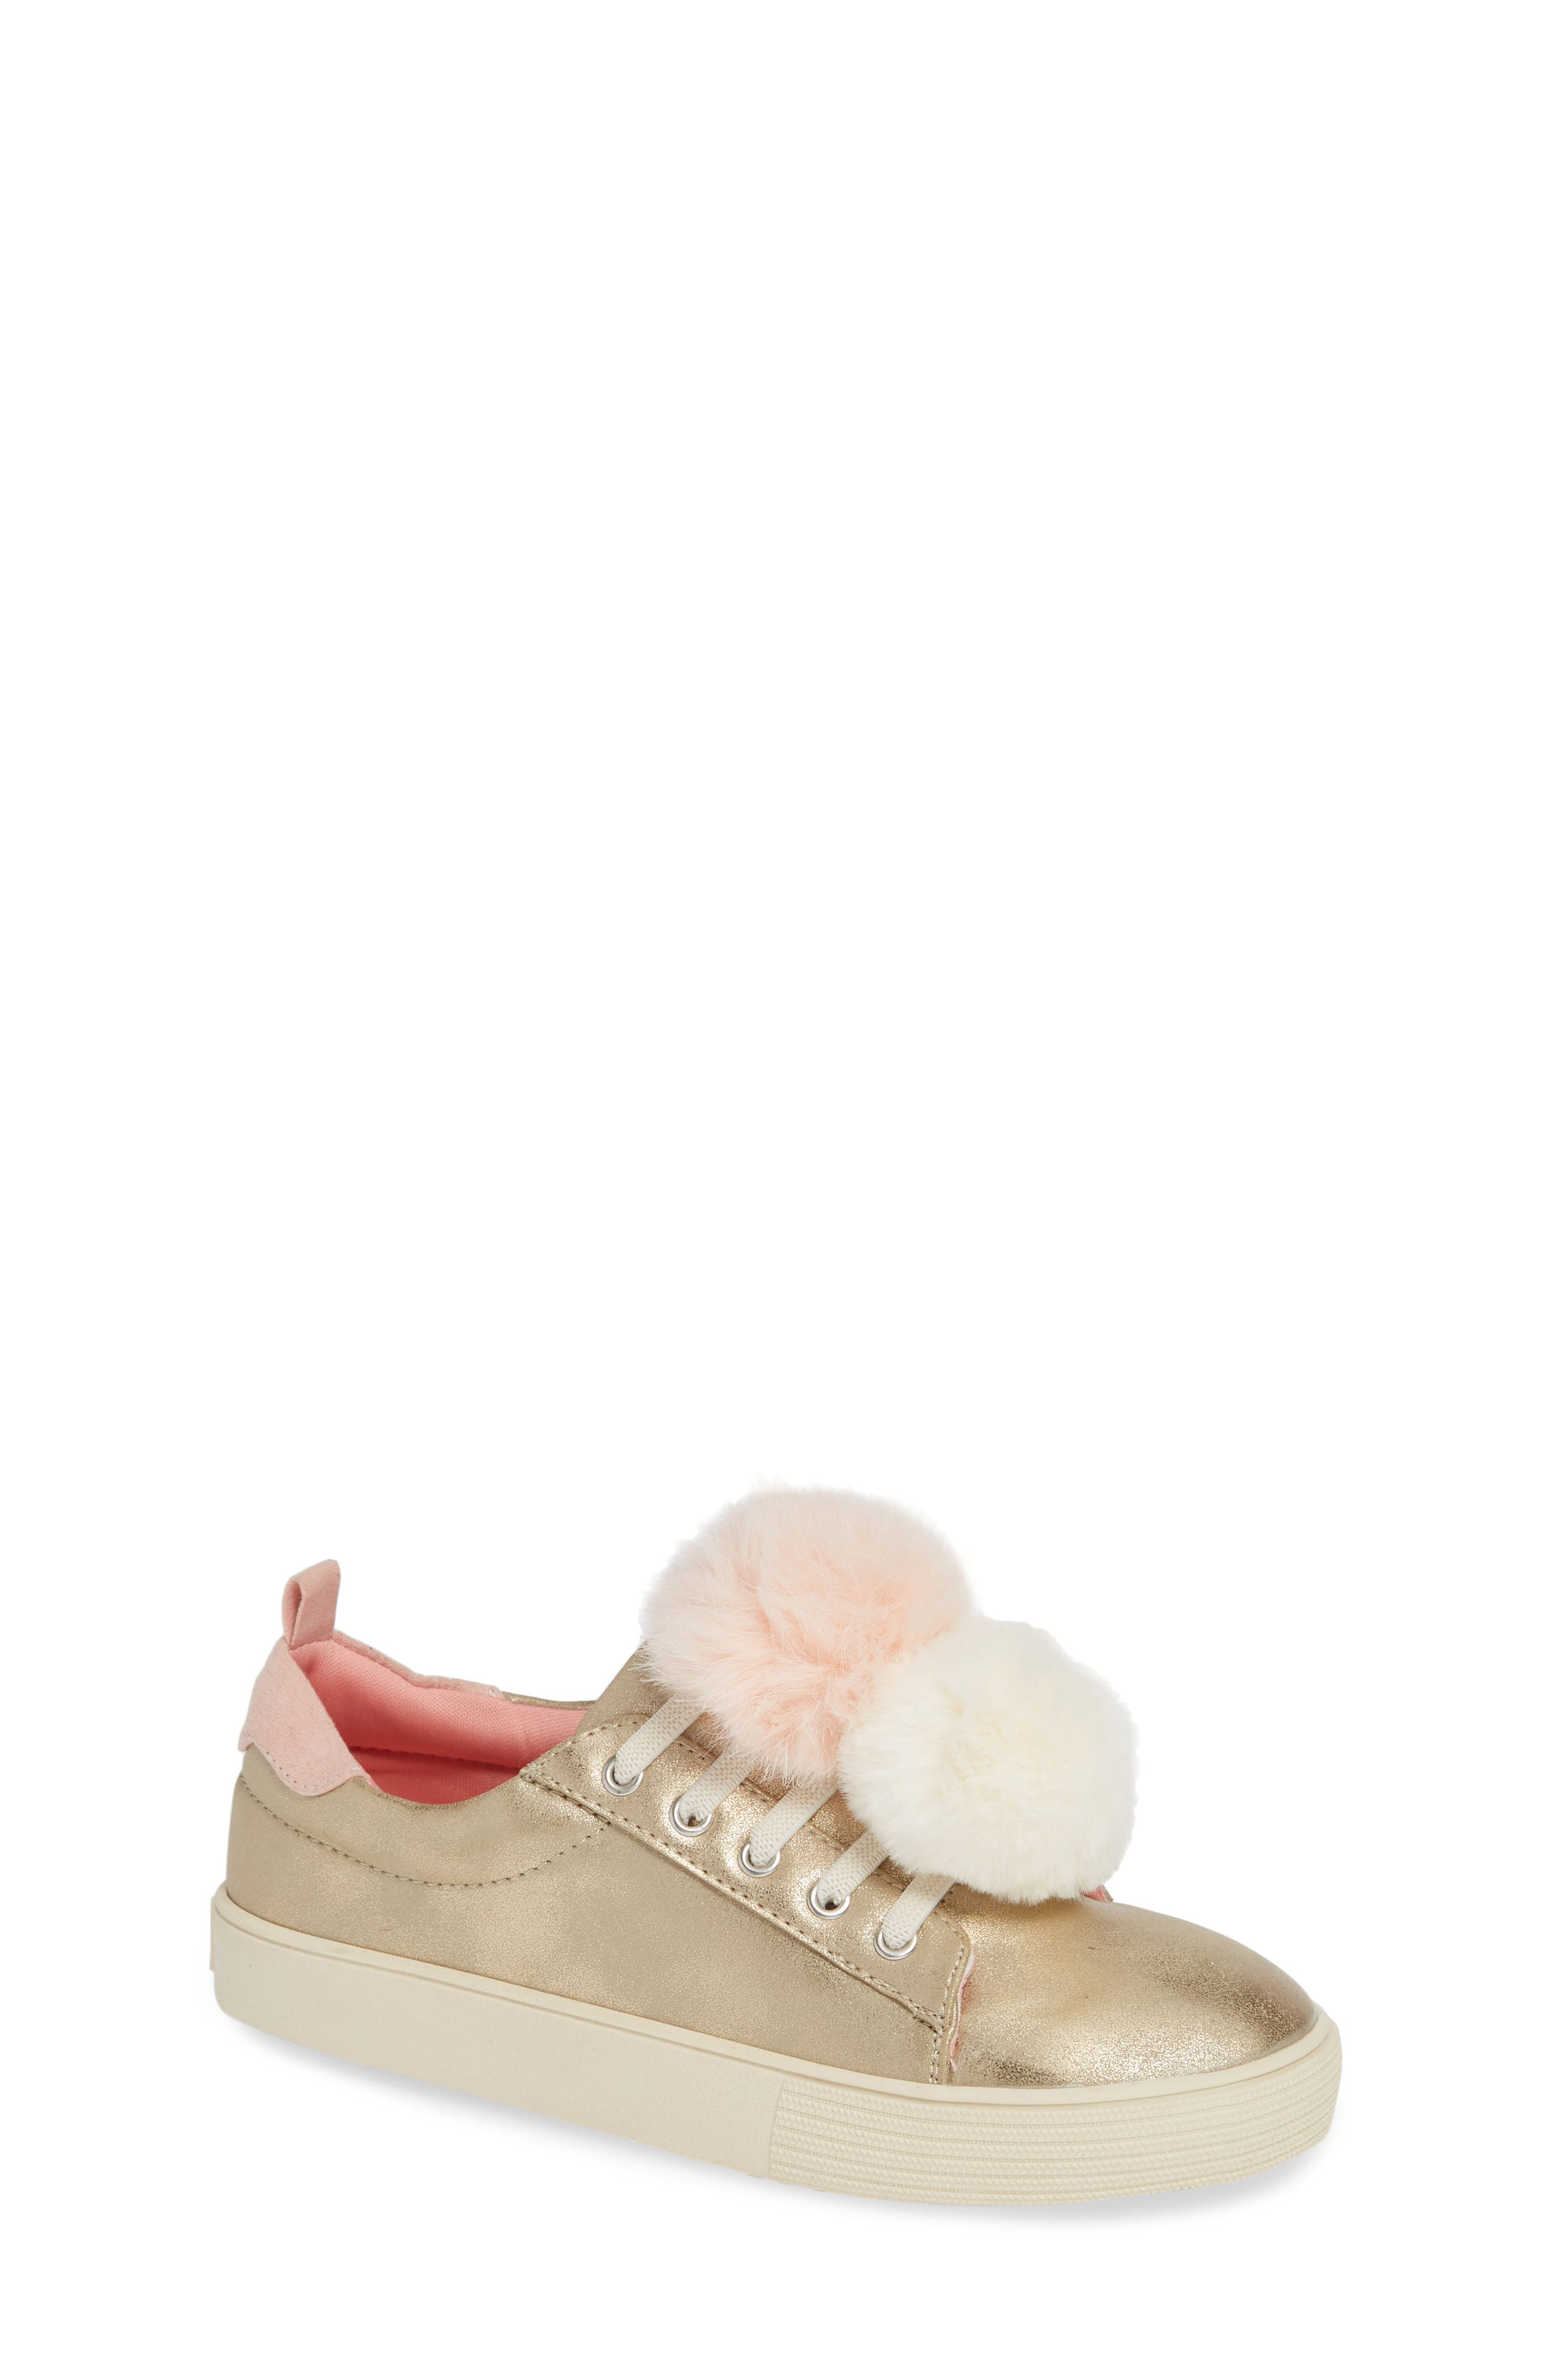 Millie Metallic Pom Sneaker,                         Main,                         color, GOLD METALLIC FAUX LEATHER